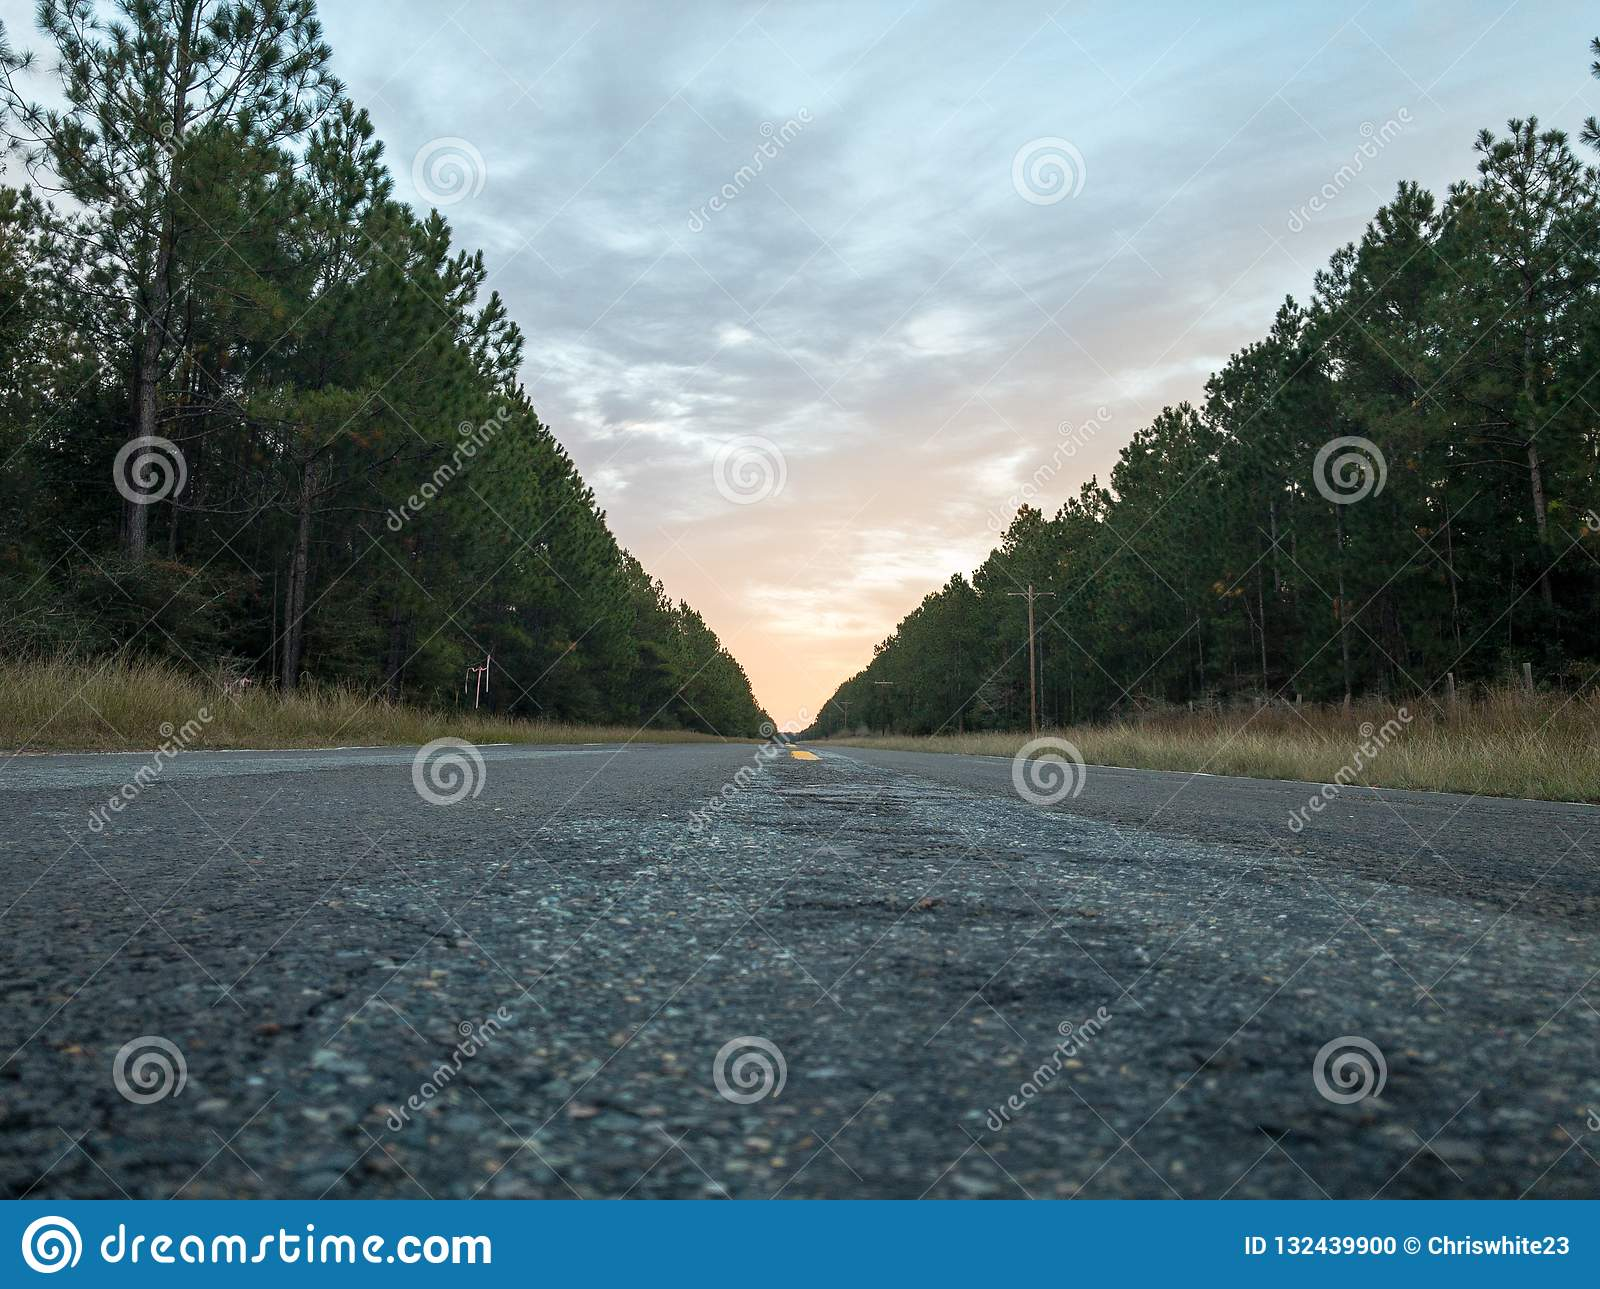 Close to sunset along a lonely rural highway